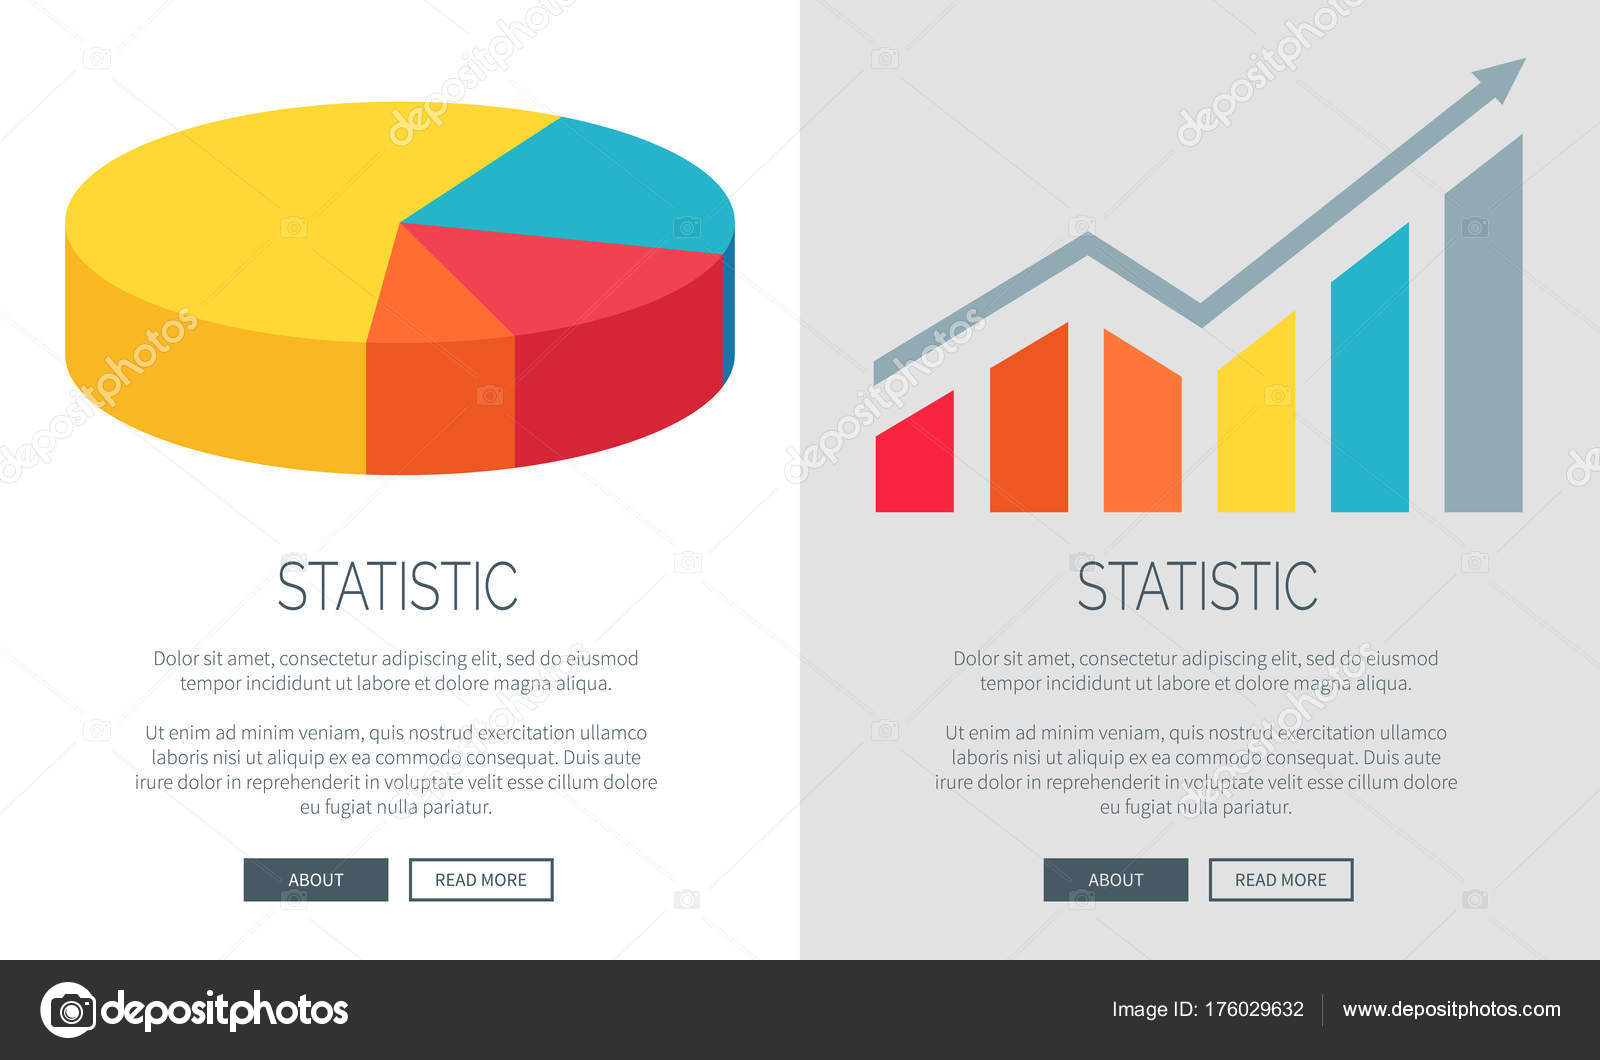 Statistic design with pie chart and bar graph stock vector statistic representation design with colorful pie chart and bar graph vector illustration of two multicolored web pages with data vector by robuart nvjuhfo Gallery